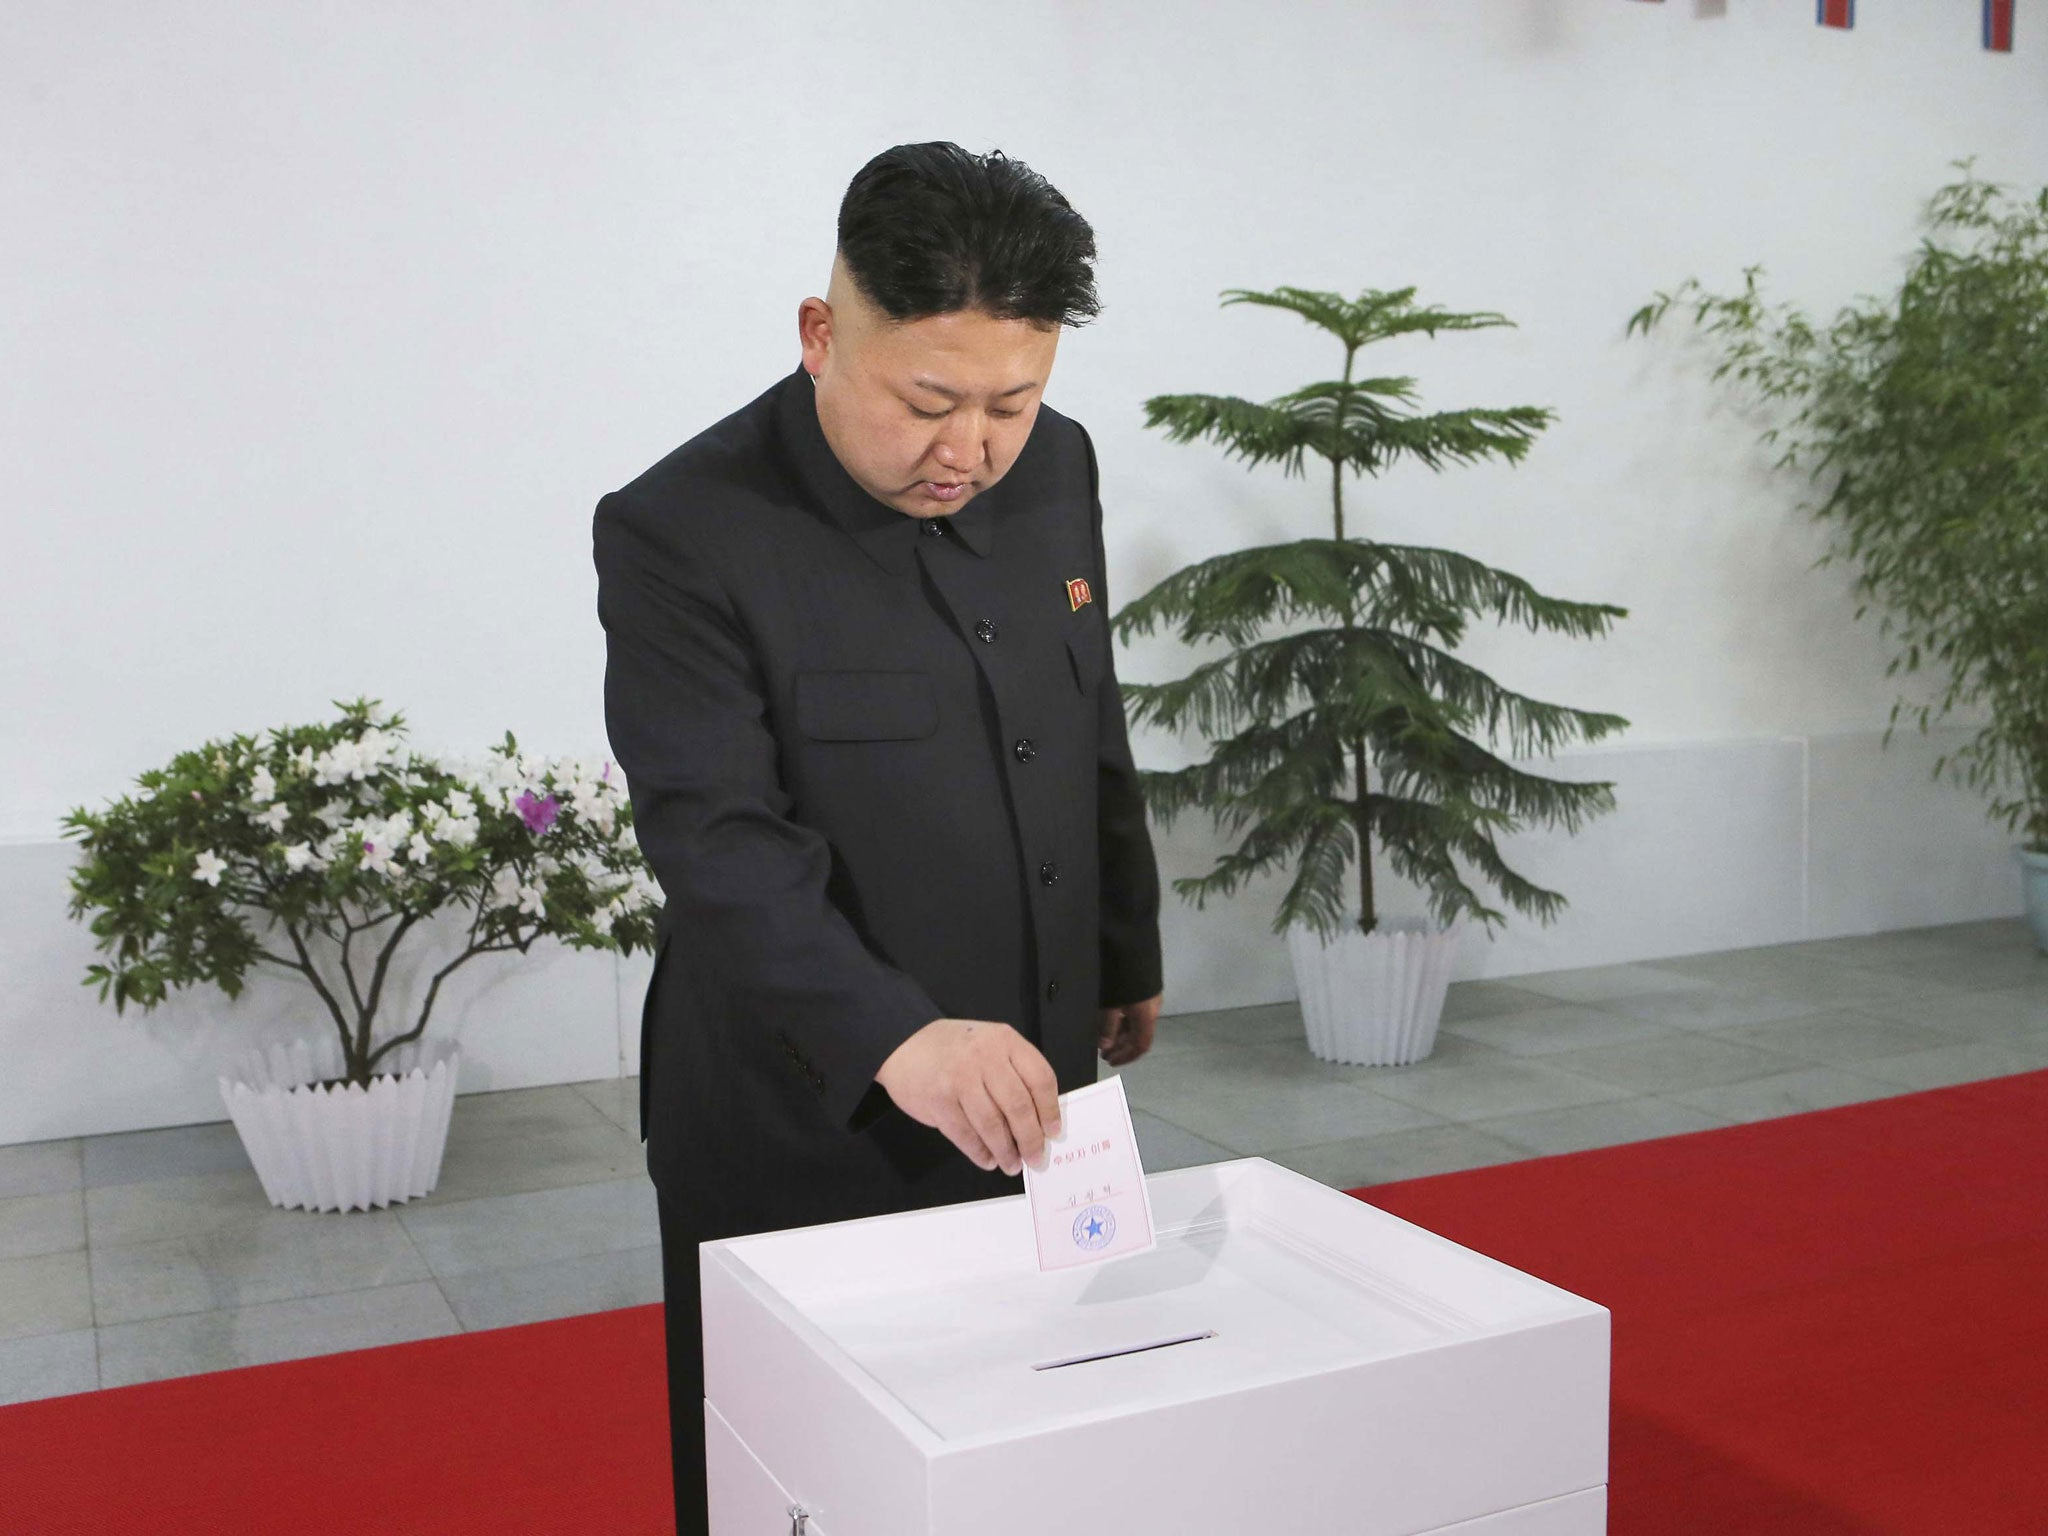 North Korea elections are held in every 5 years